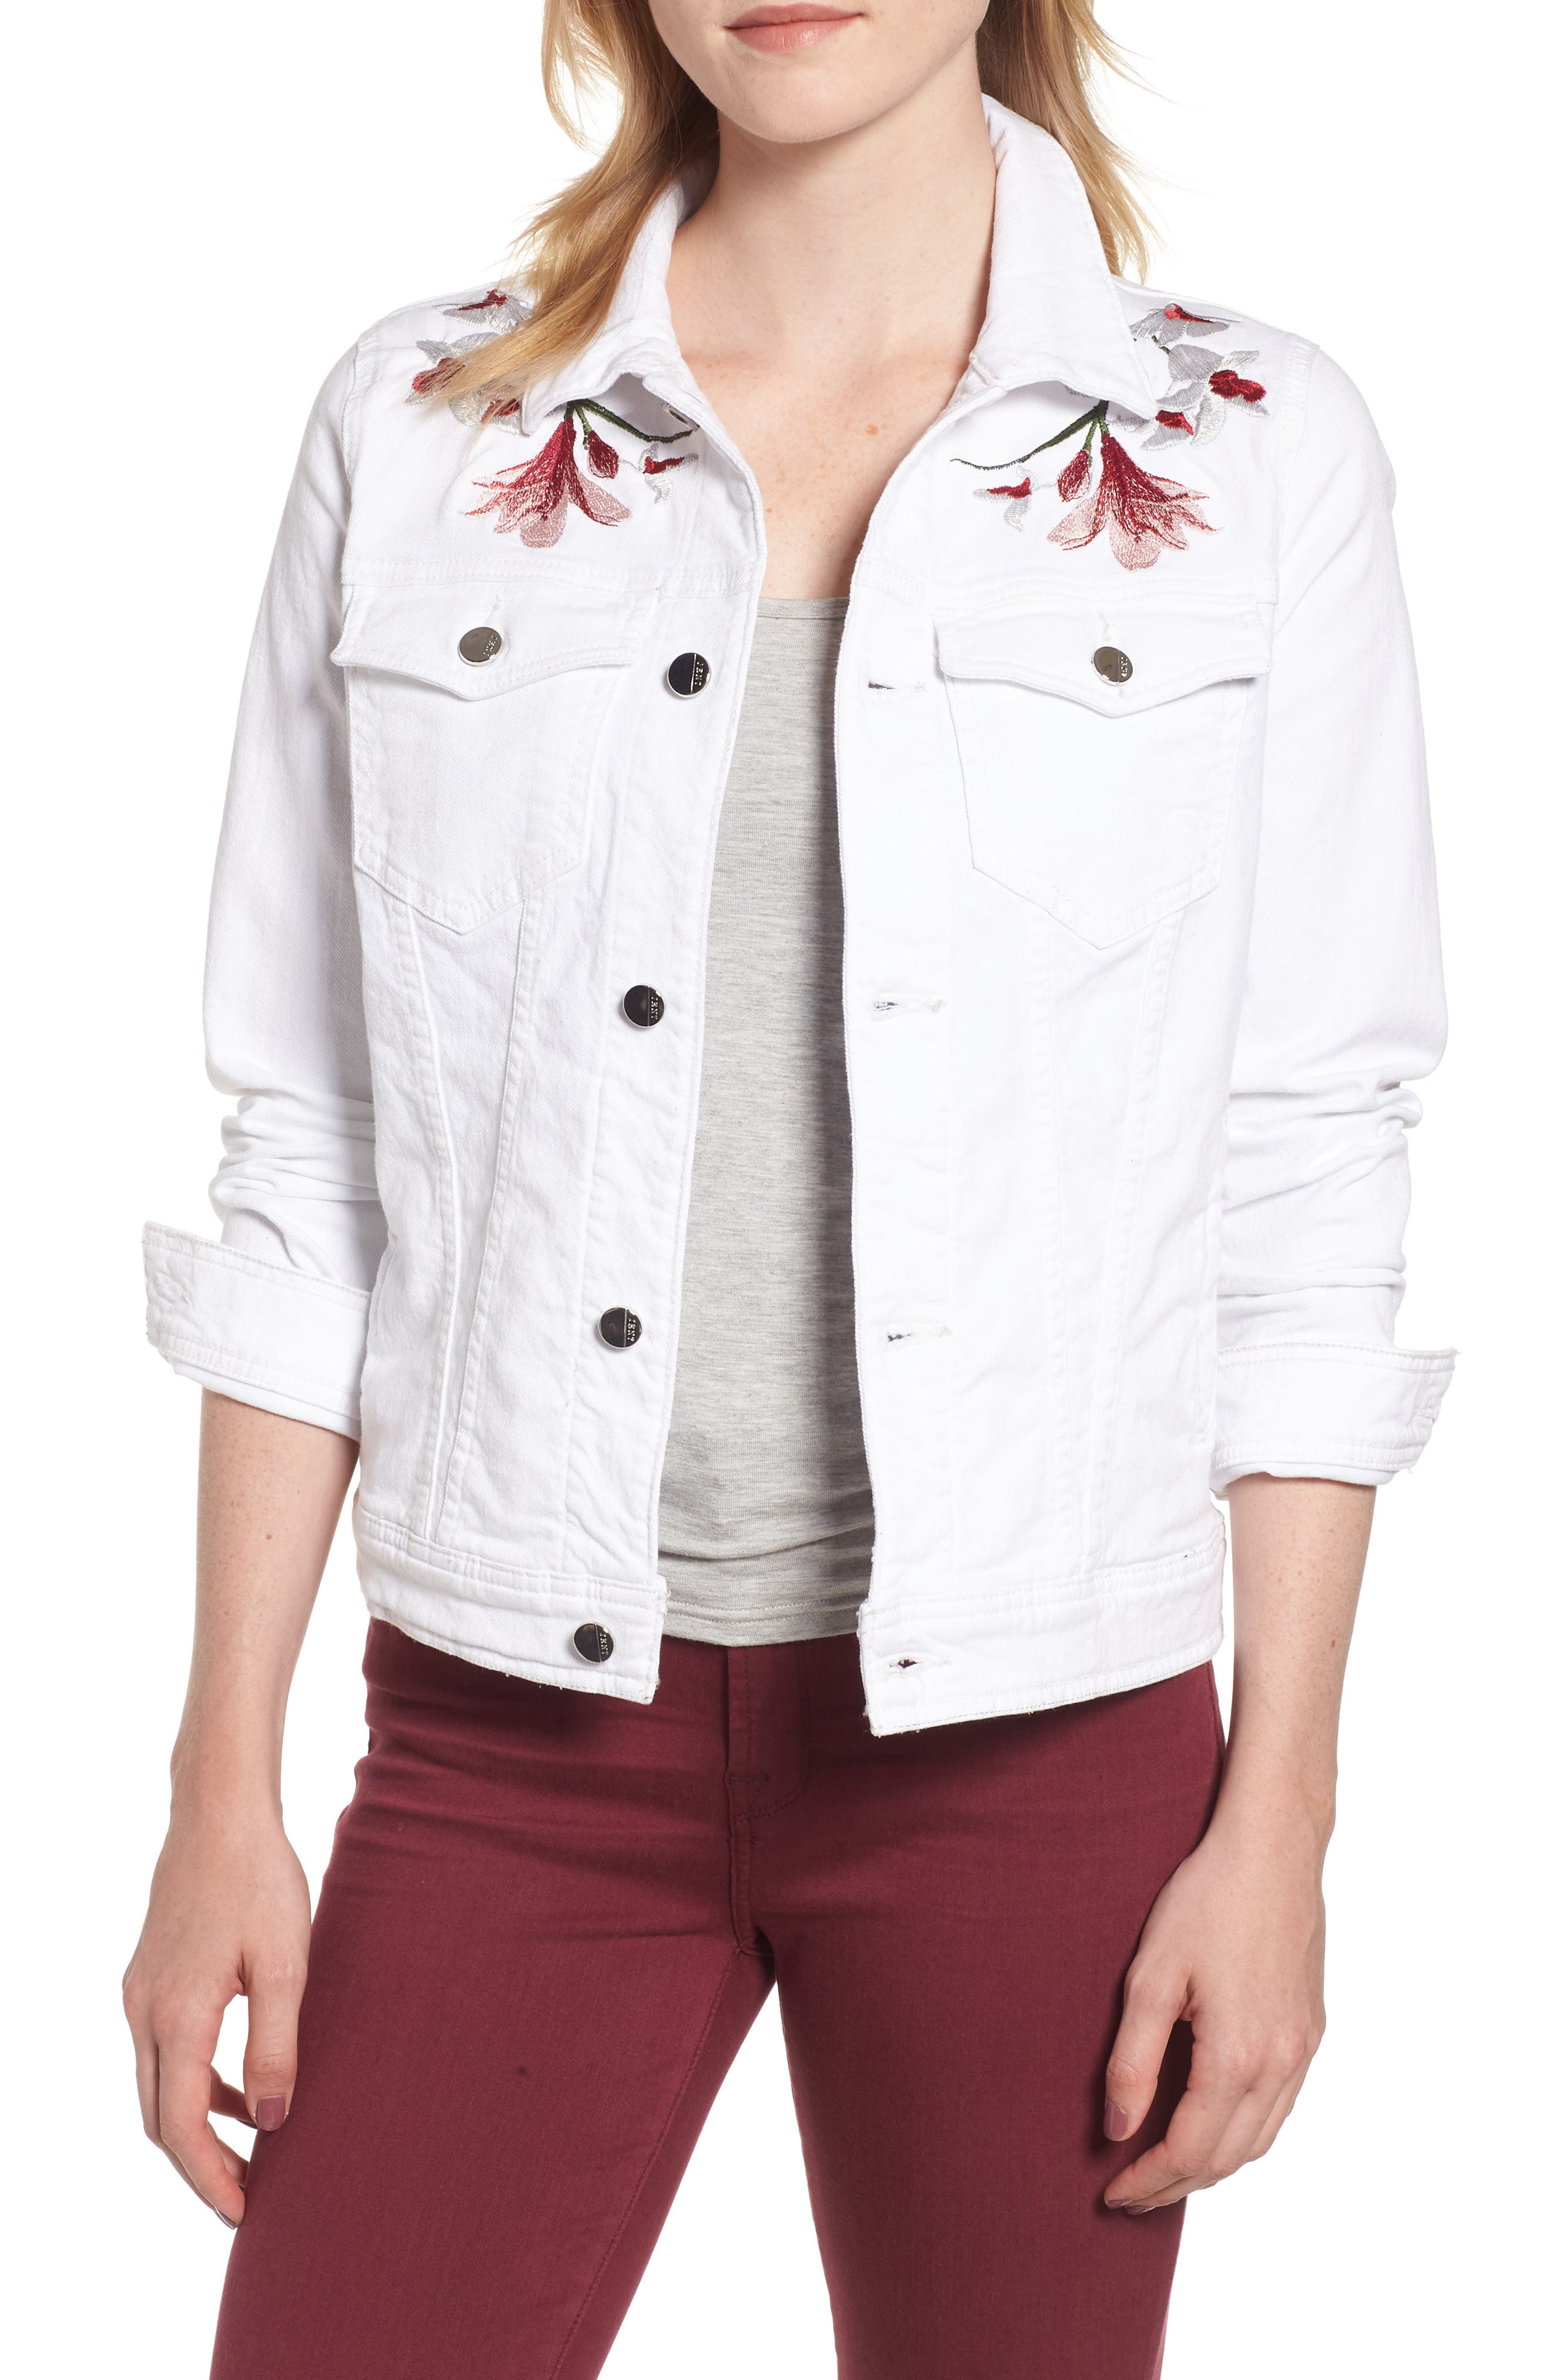 JEN7 BY 7 FOR ALL MANKIND Embroidered Denim Jacket, Main, color, 102